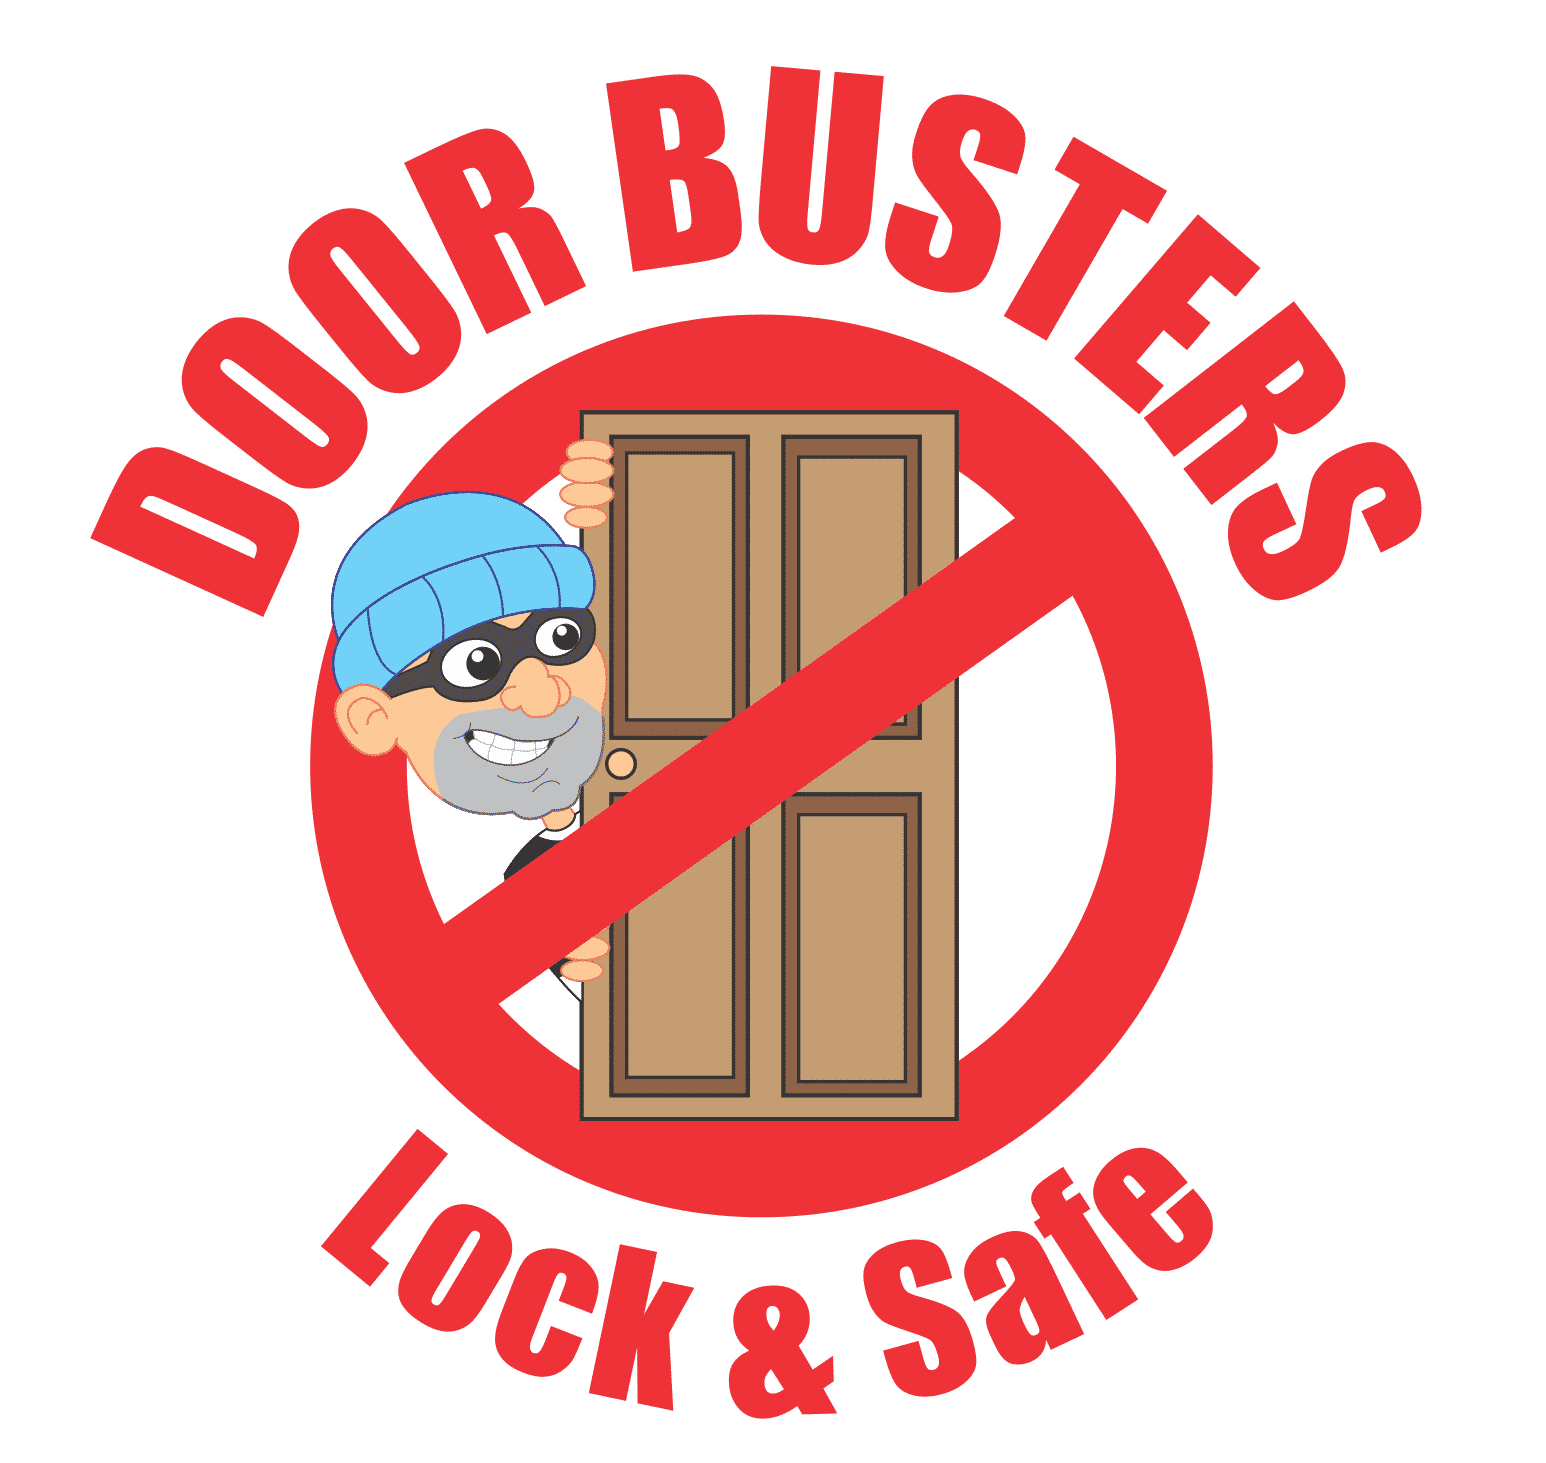 Door Busters Lock & Safe Locksmith License